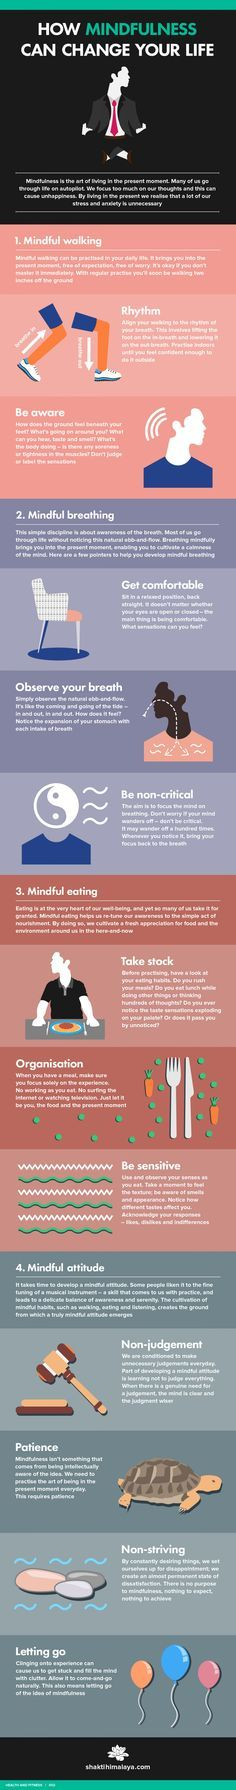 How Mindfulness Can Change Your Life - Mental Health & well being. Part of CBT & DBT therapy. The wellness of mind body & spirit.